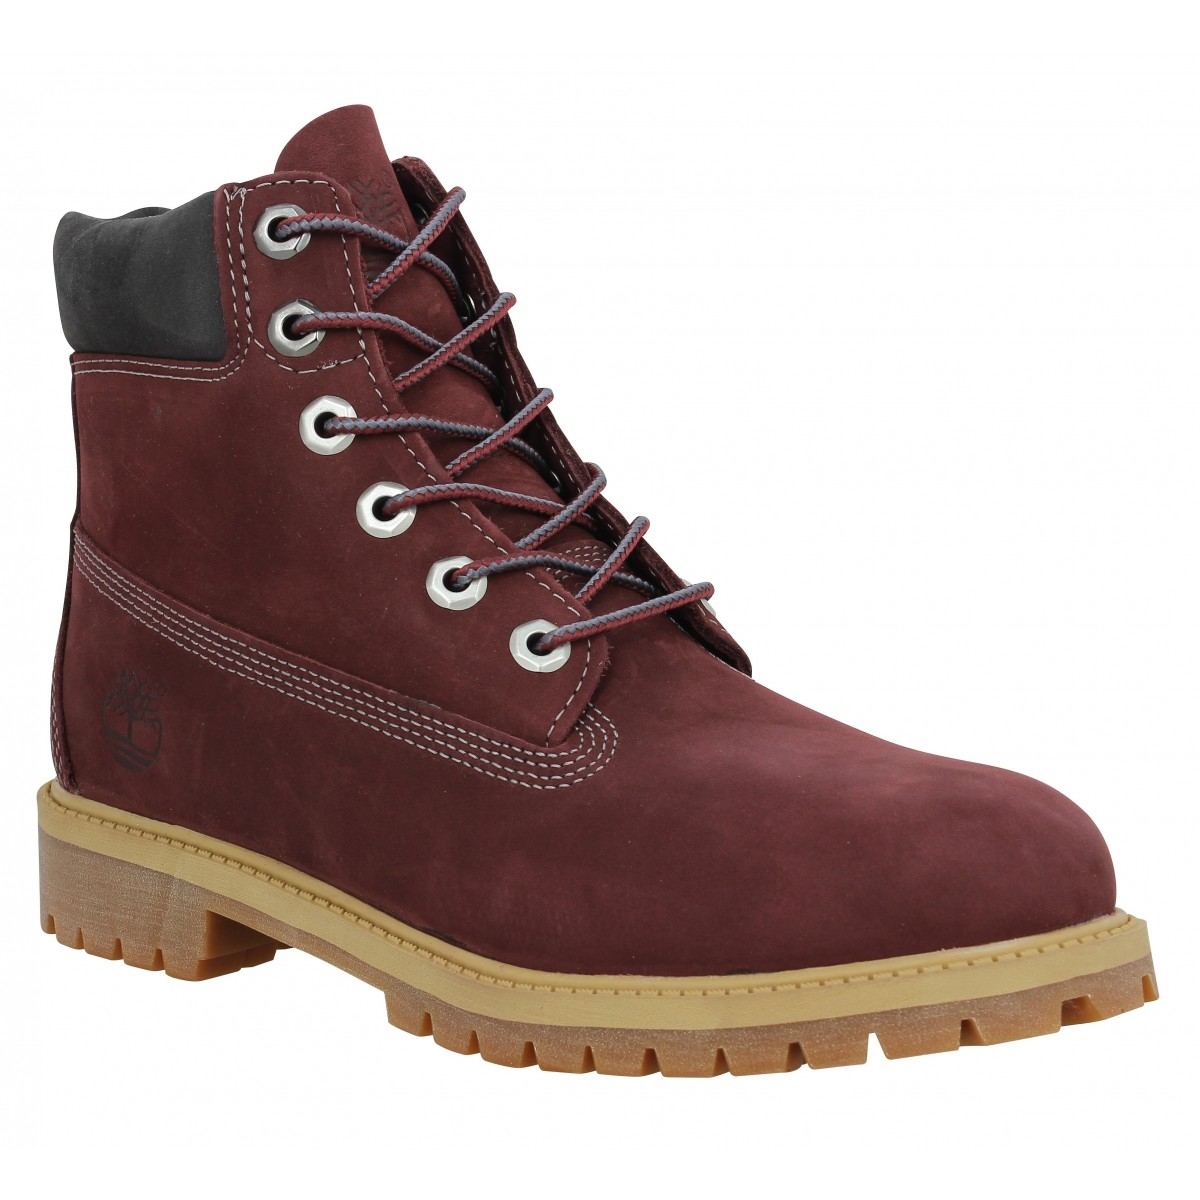 e09fdd99a84 Bottines TIMBERLAND 6in Premium velours Femme Bordeaux